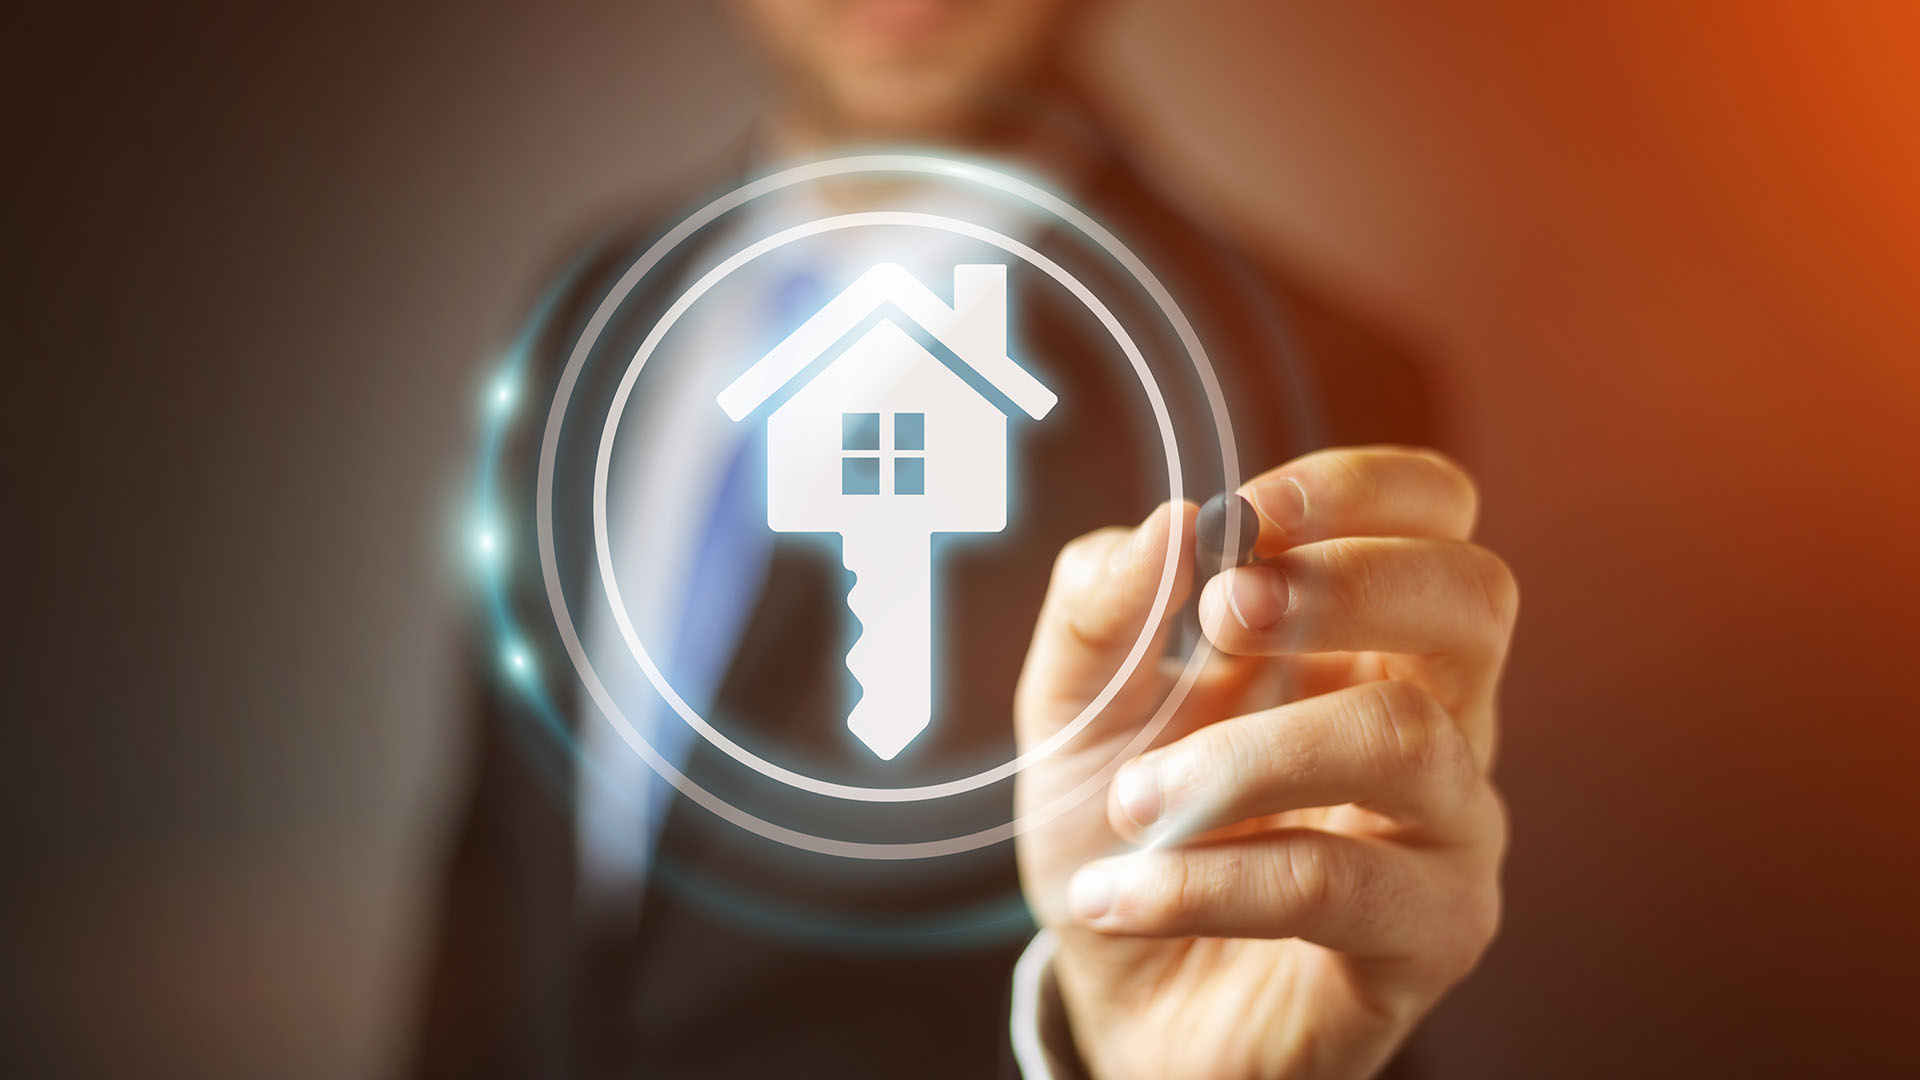 TOP REASONS TO INVEST IN EMERGING REAL ESTATE MARKETS